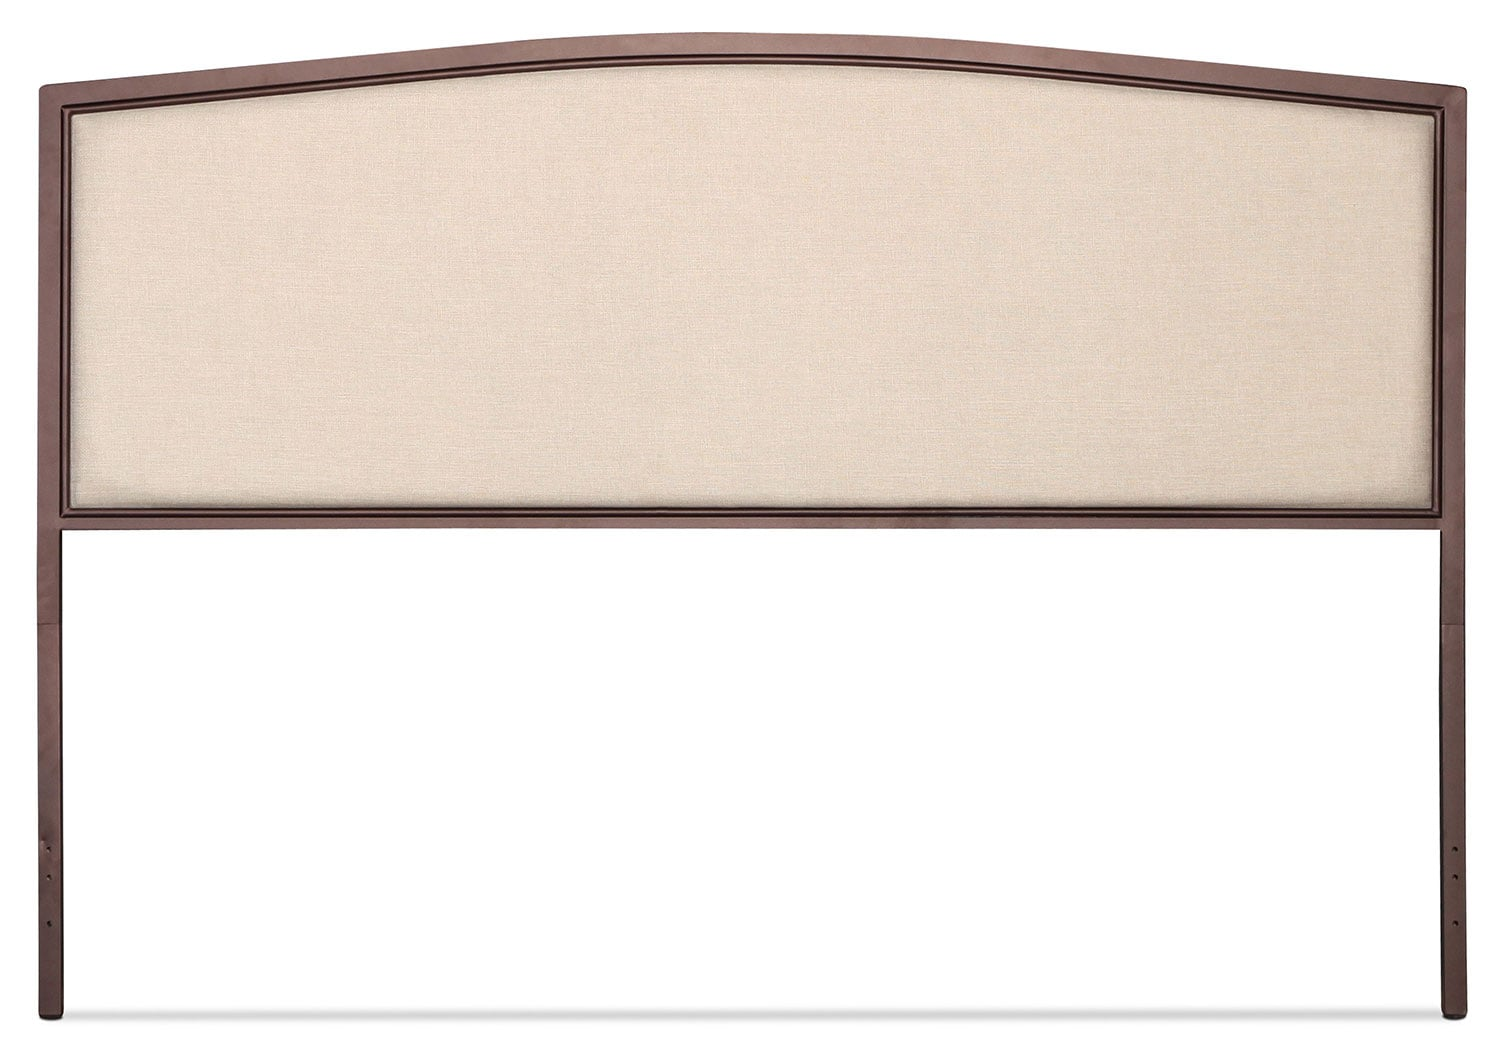 Bayside King Upholstered Headboard - Cream